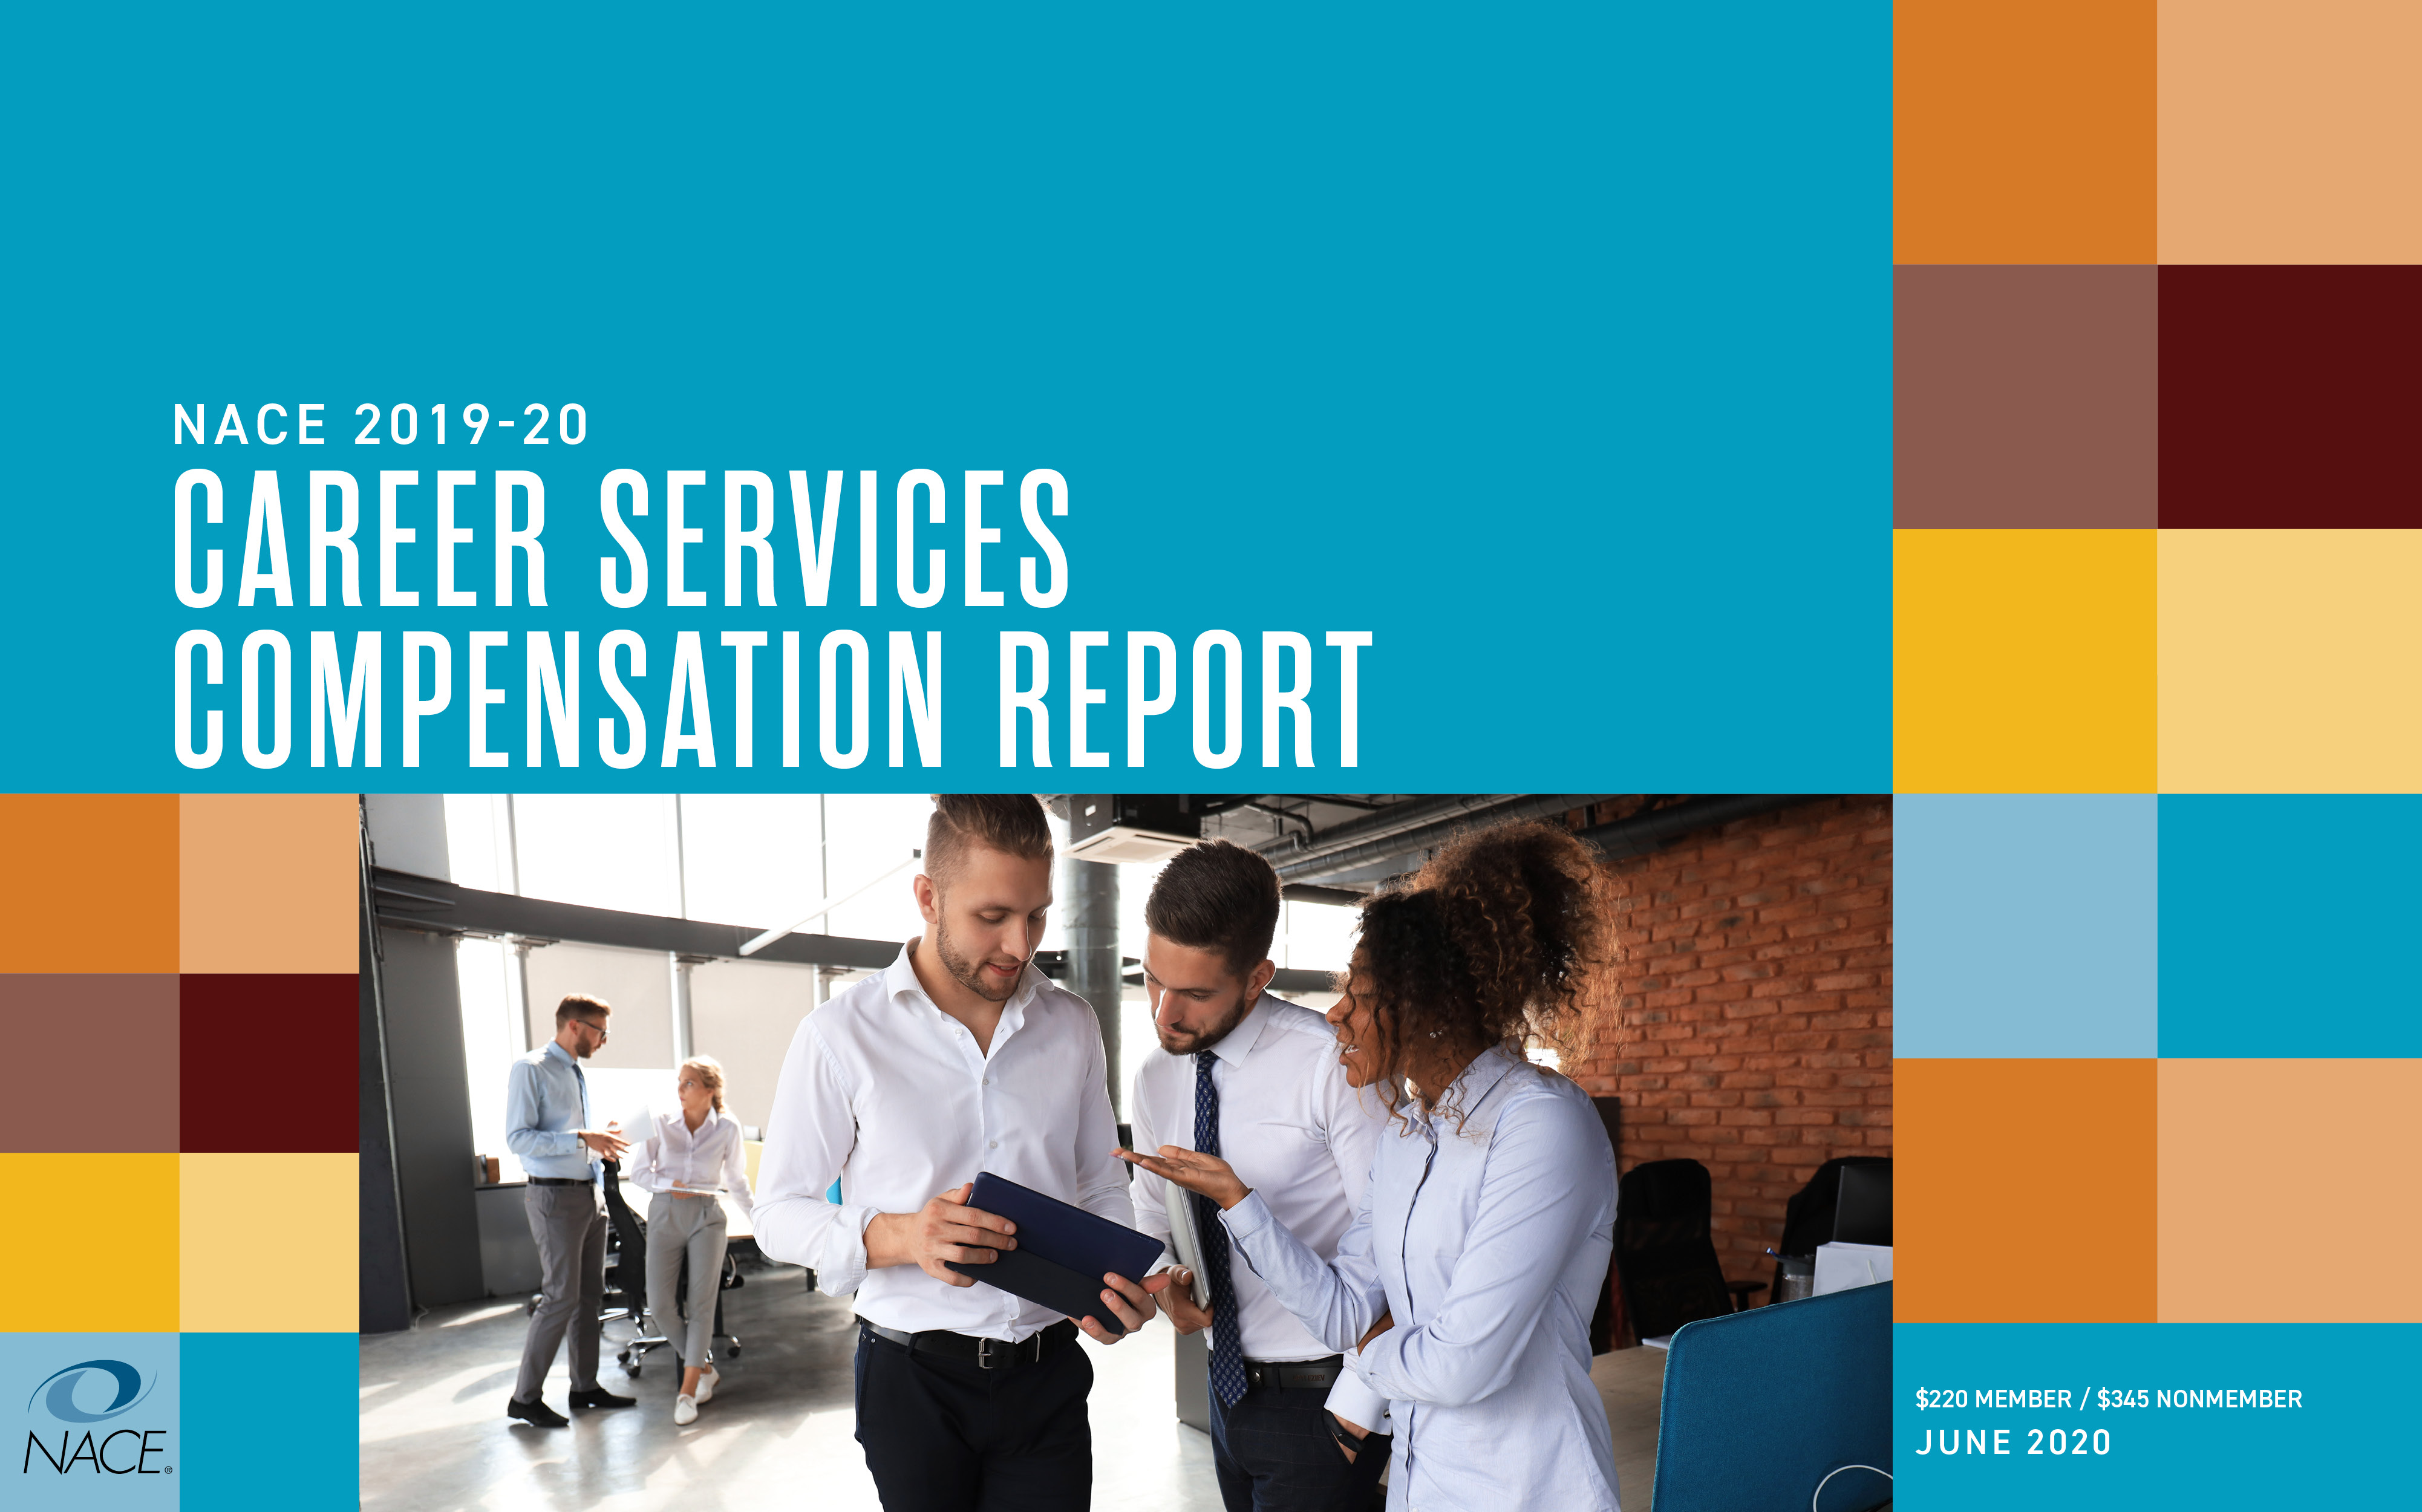 2019-20 NACE Career Services Compensation Report